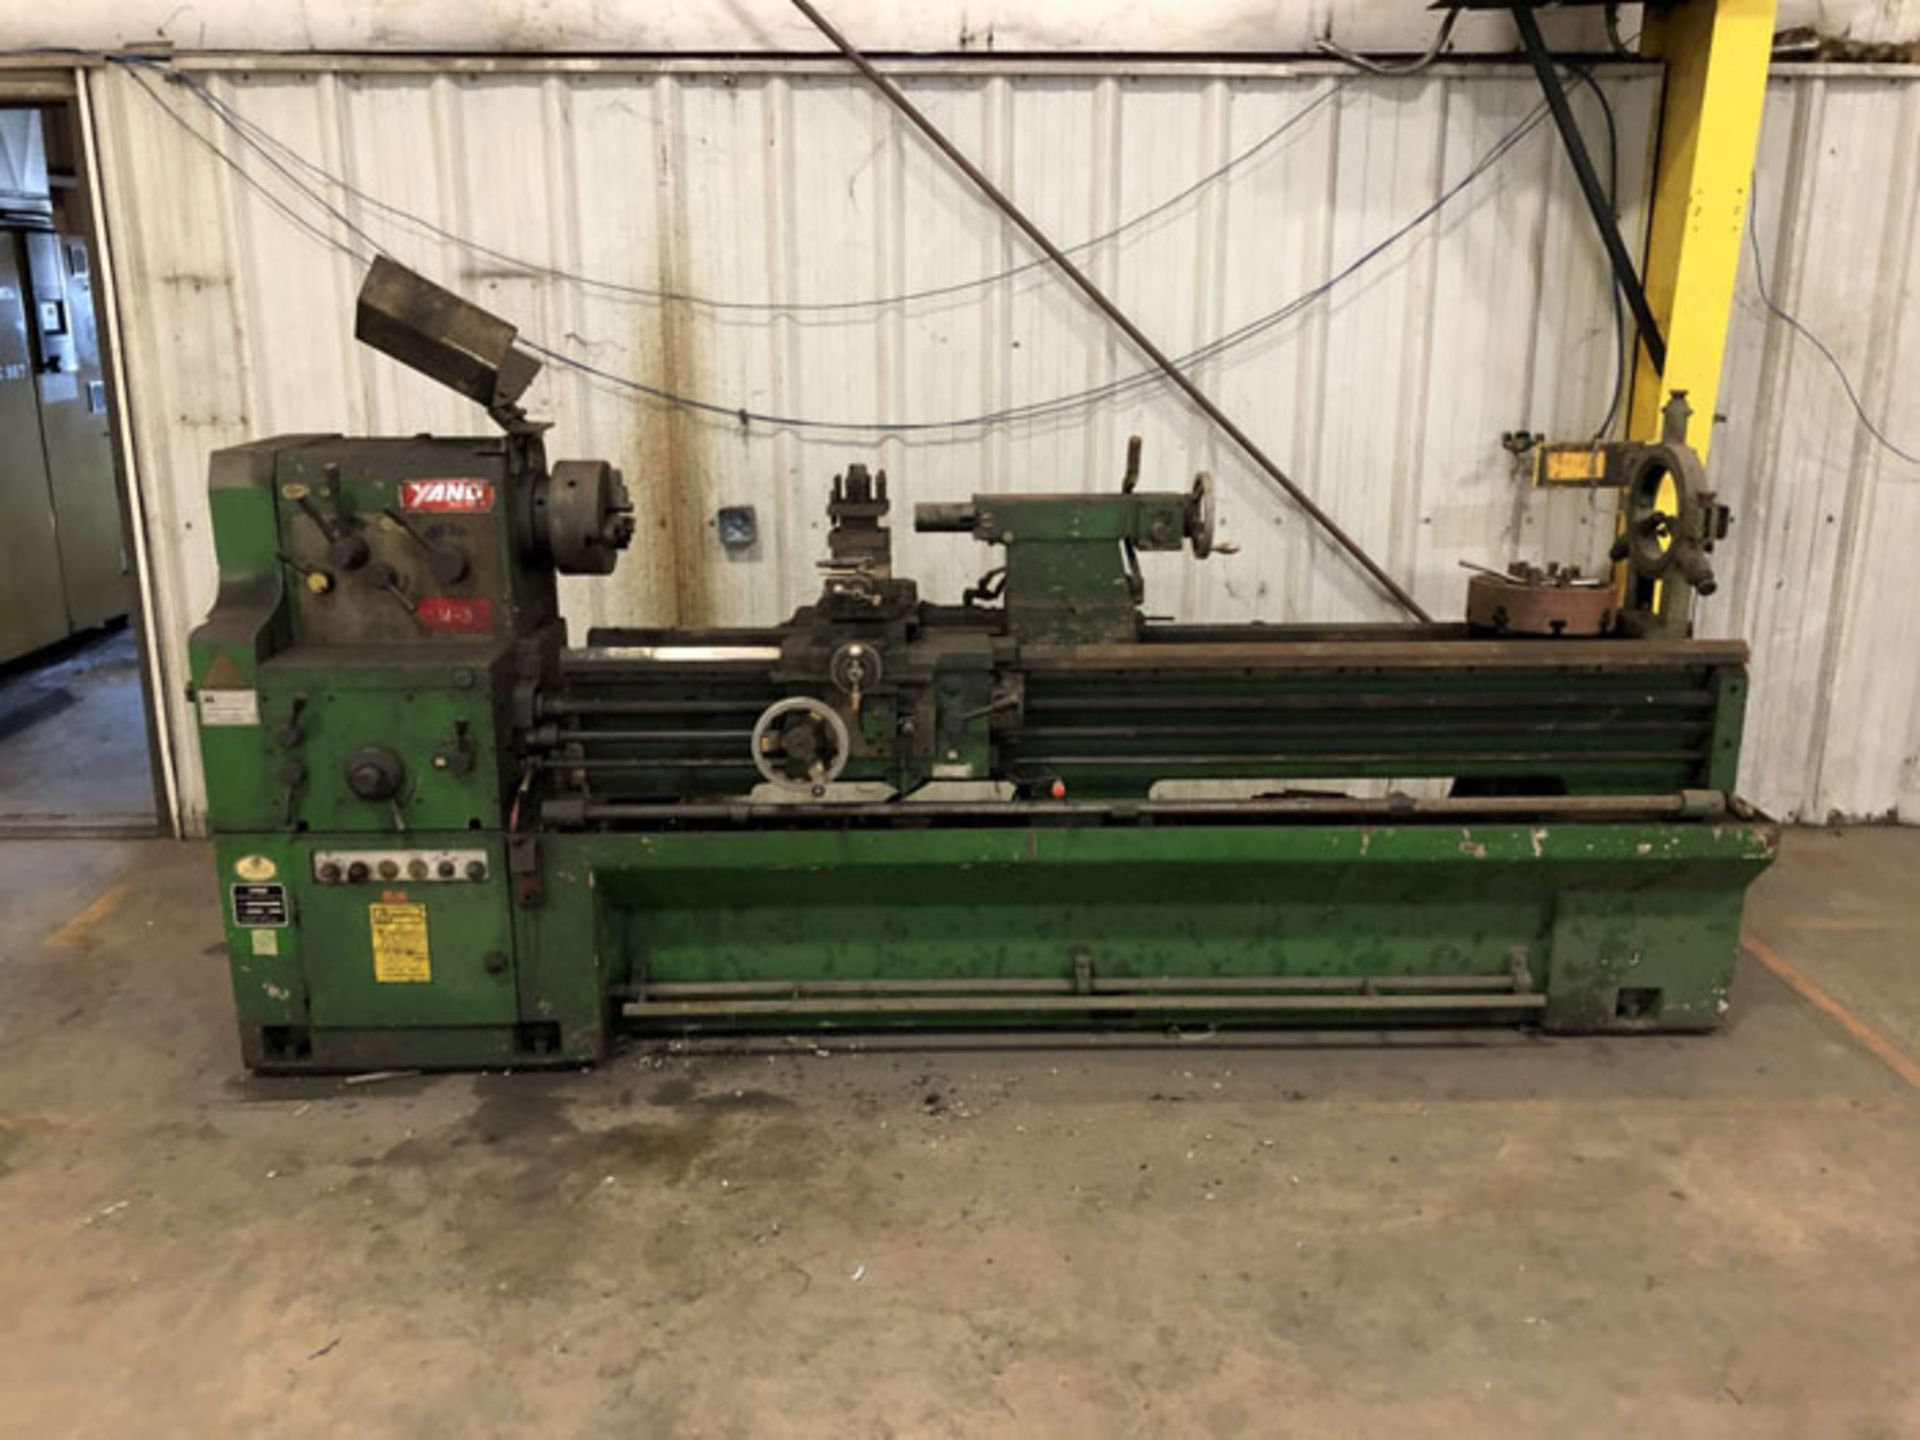 "Lot 17A - 1994 Yang Engine Lathe | 22"" x 78"", Mdl: 56200G, S/N: B92425, Located In: Painesville, OH -"